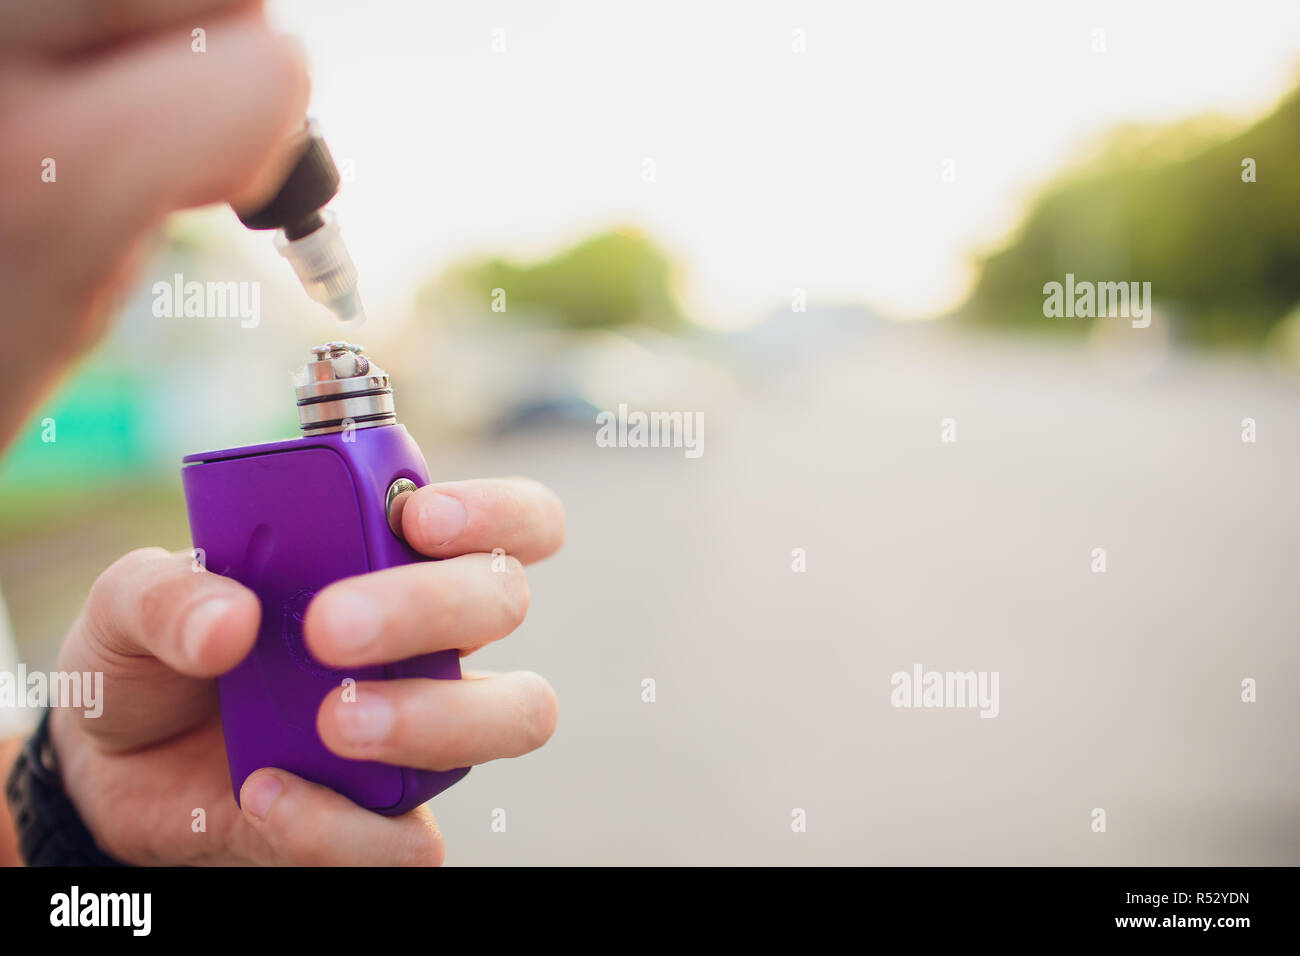 Rebuildable dripping atomizer or RDA for vaping or e-cigarette with coil and cotton stripes wetted with e-liquid, modern vape device for quit smoking, macro photo with selective focus - Stock Image